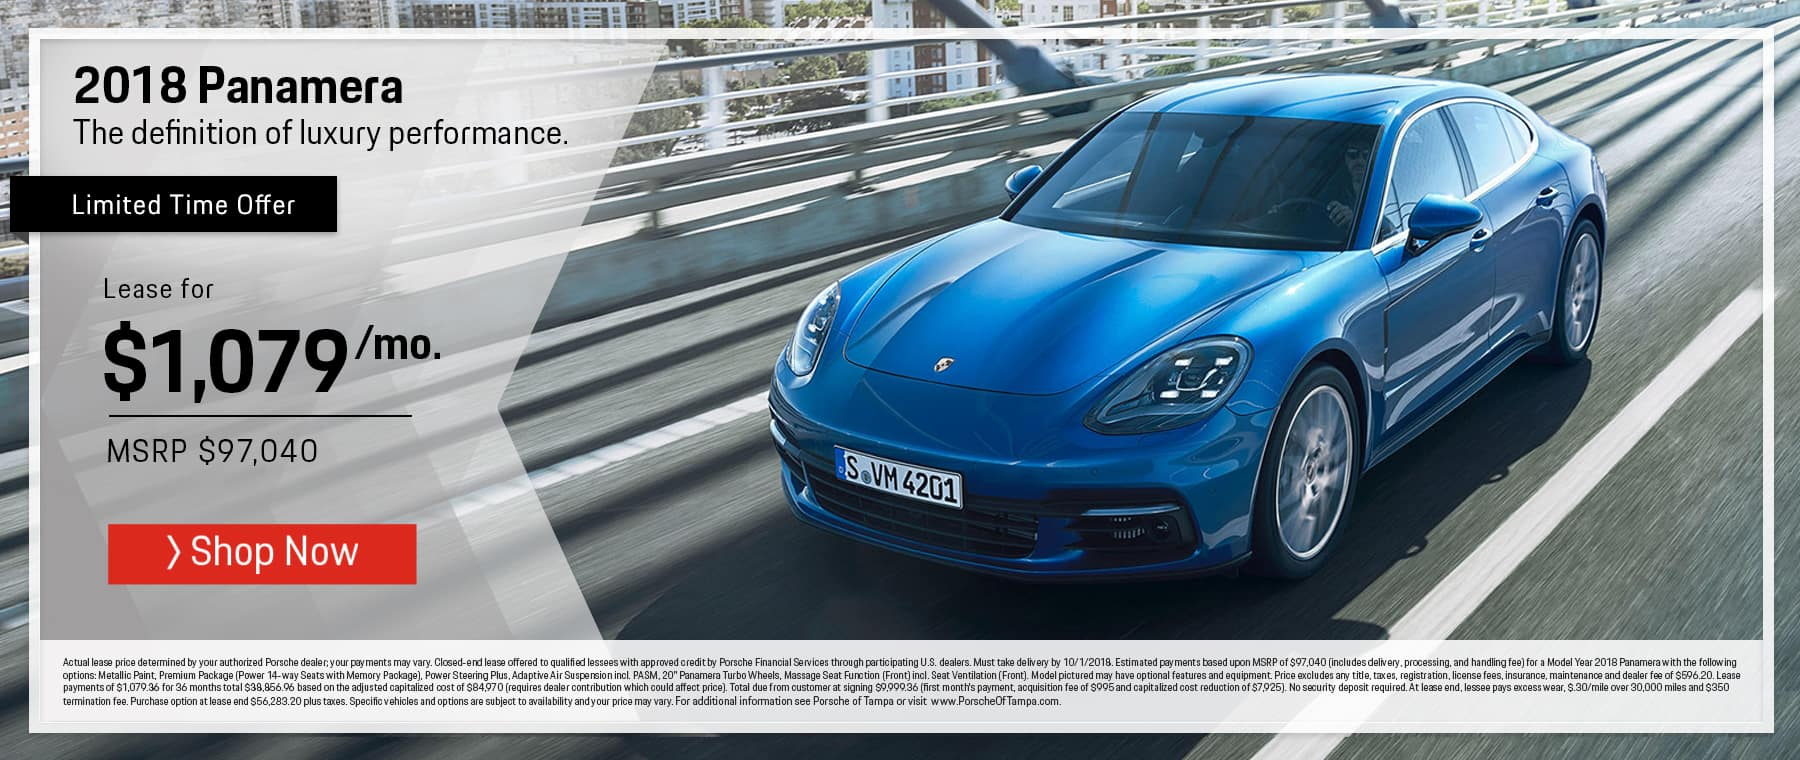 2018 Panamera Lease Offer